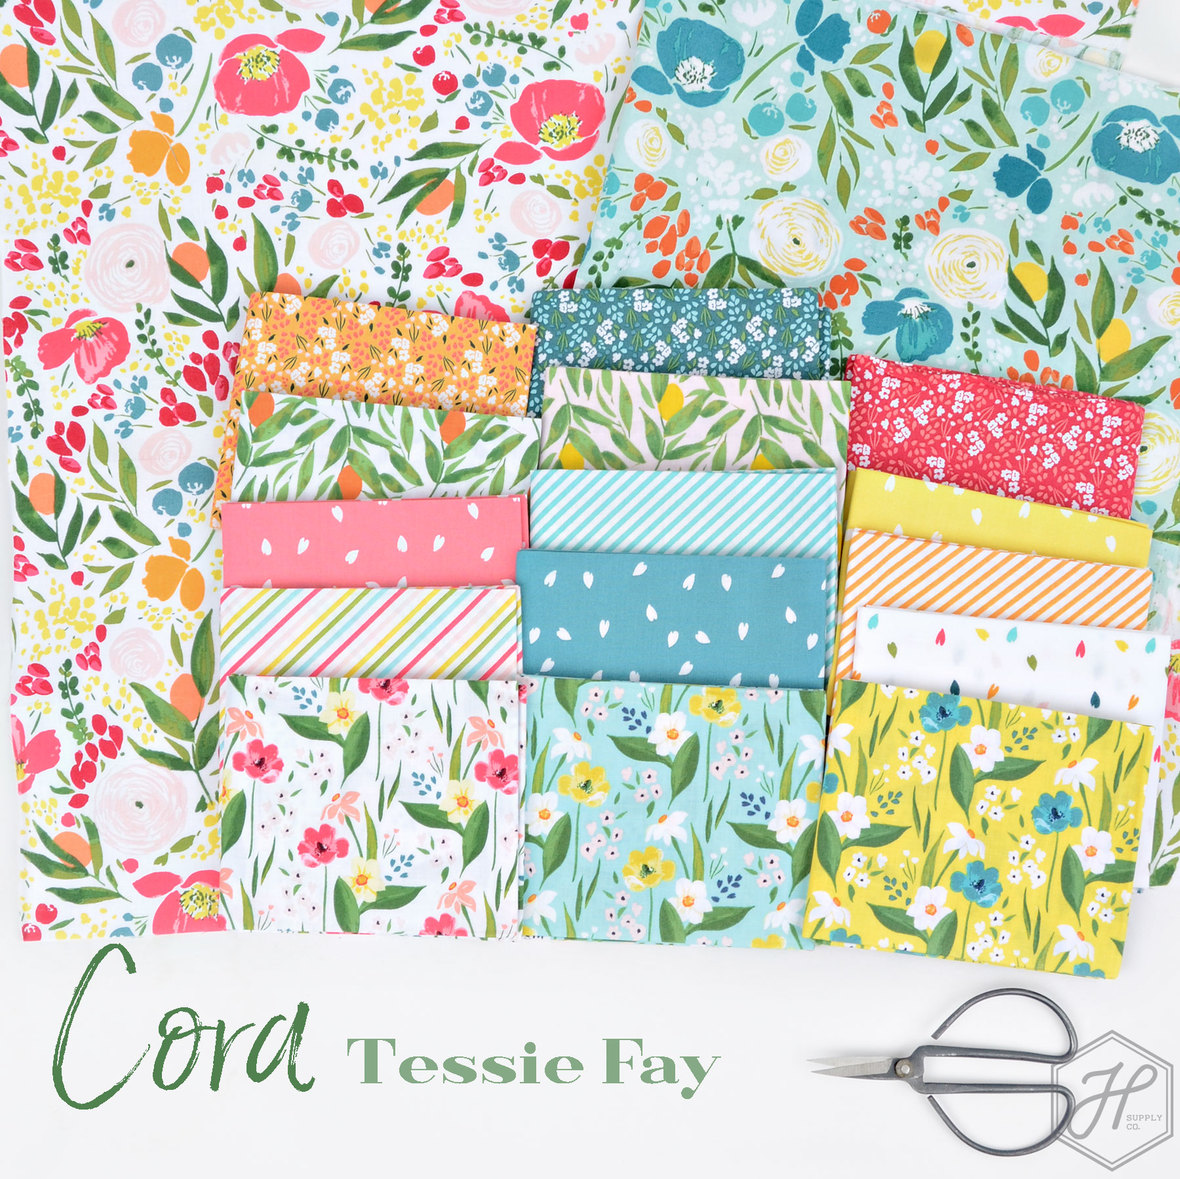 Cora-Fabric-Tessie-Fay-for-Windham-at-Hawthorne-Supply-Co